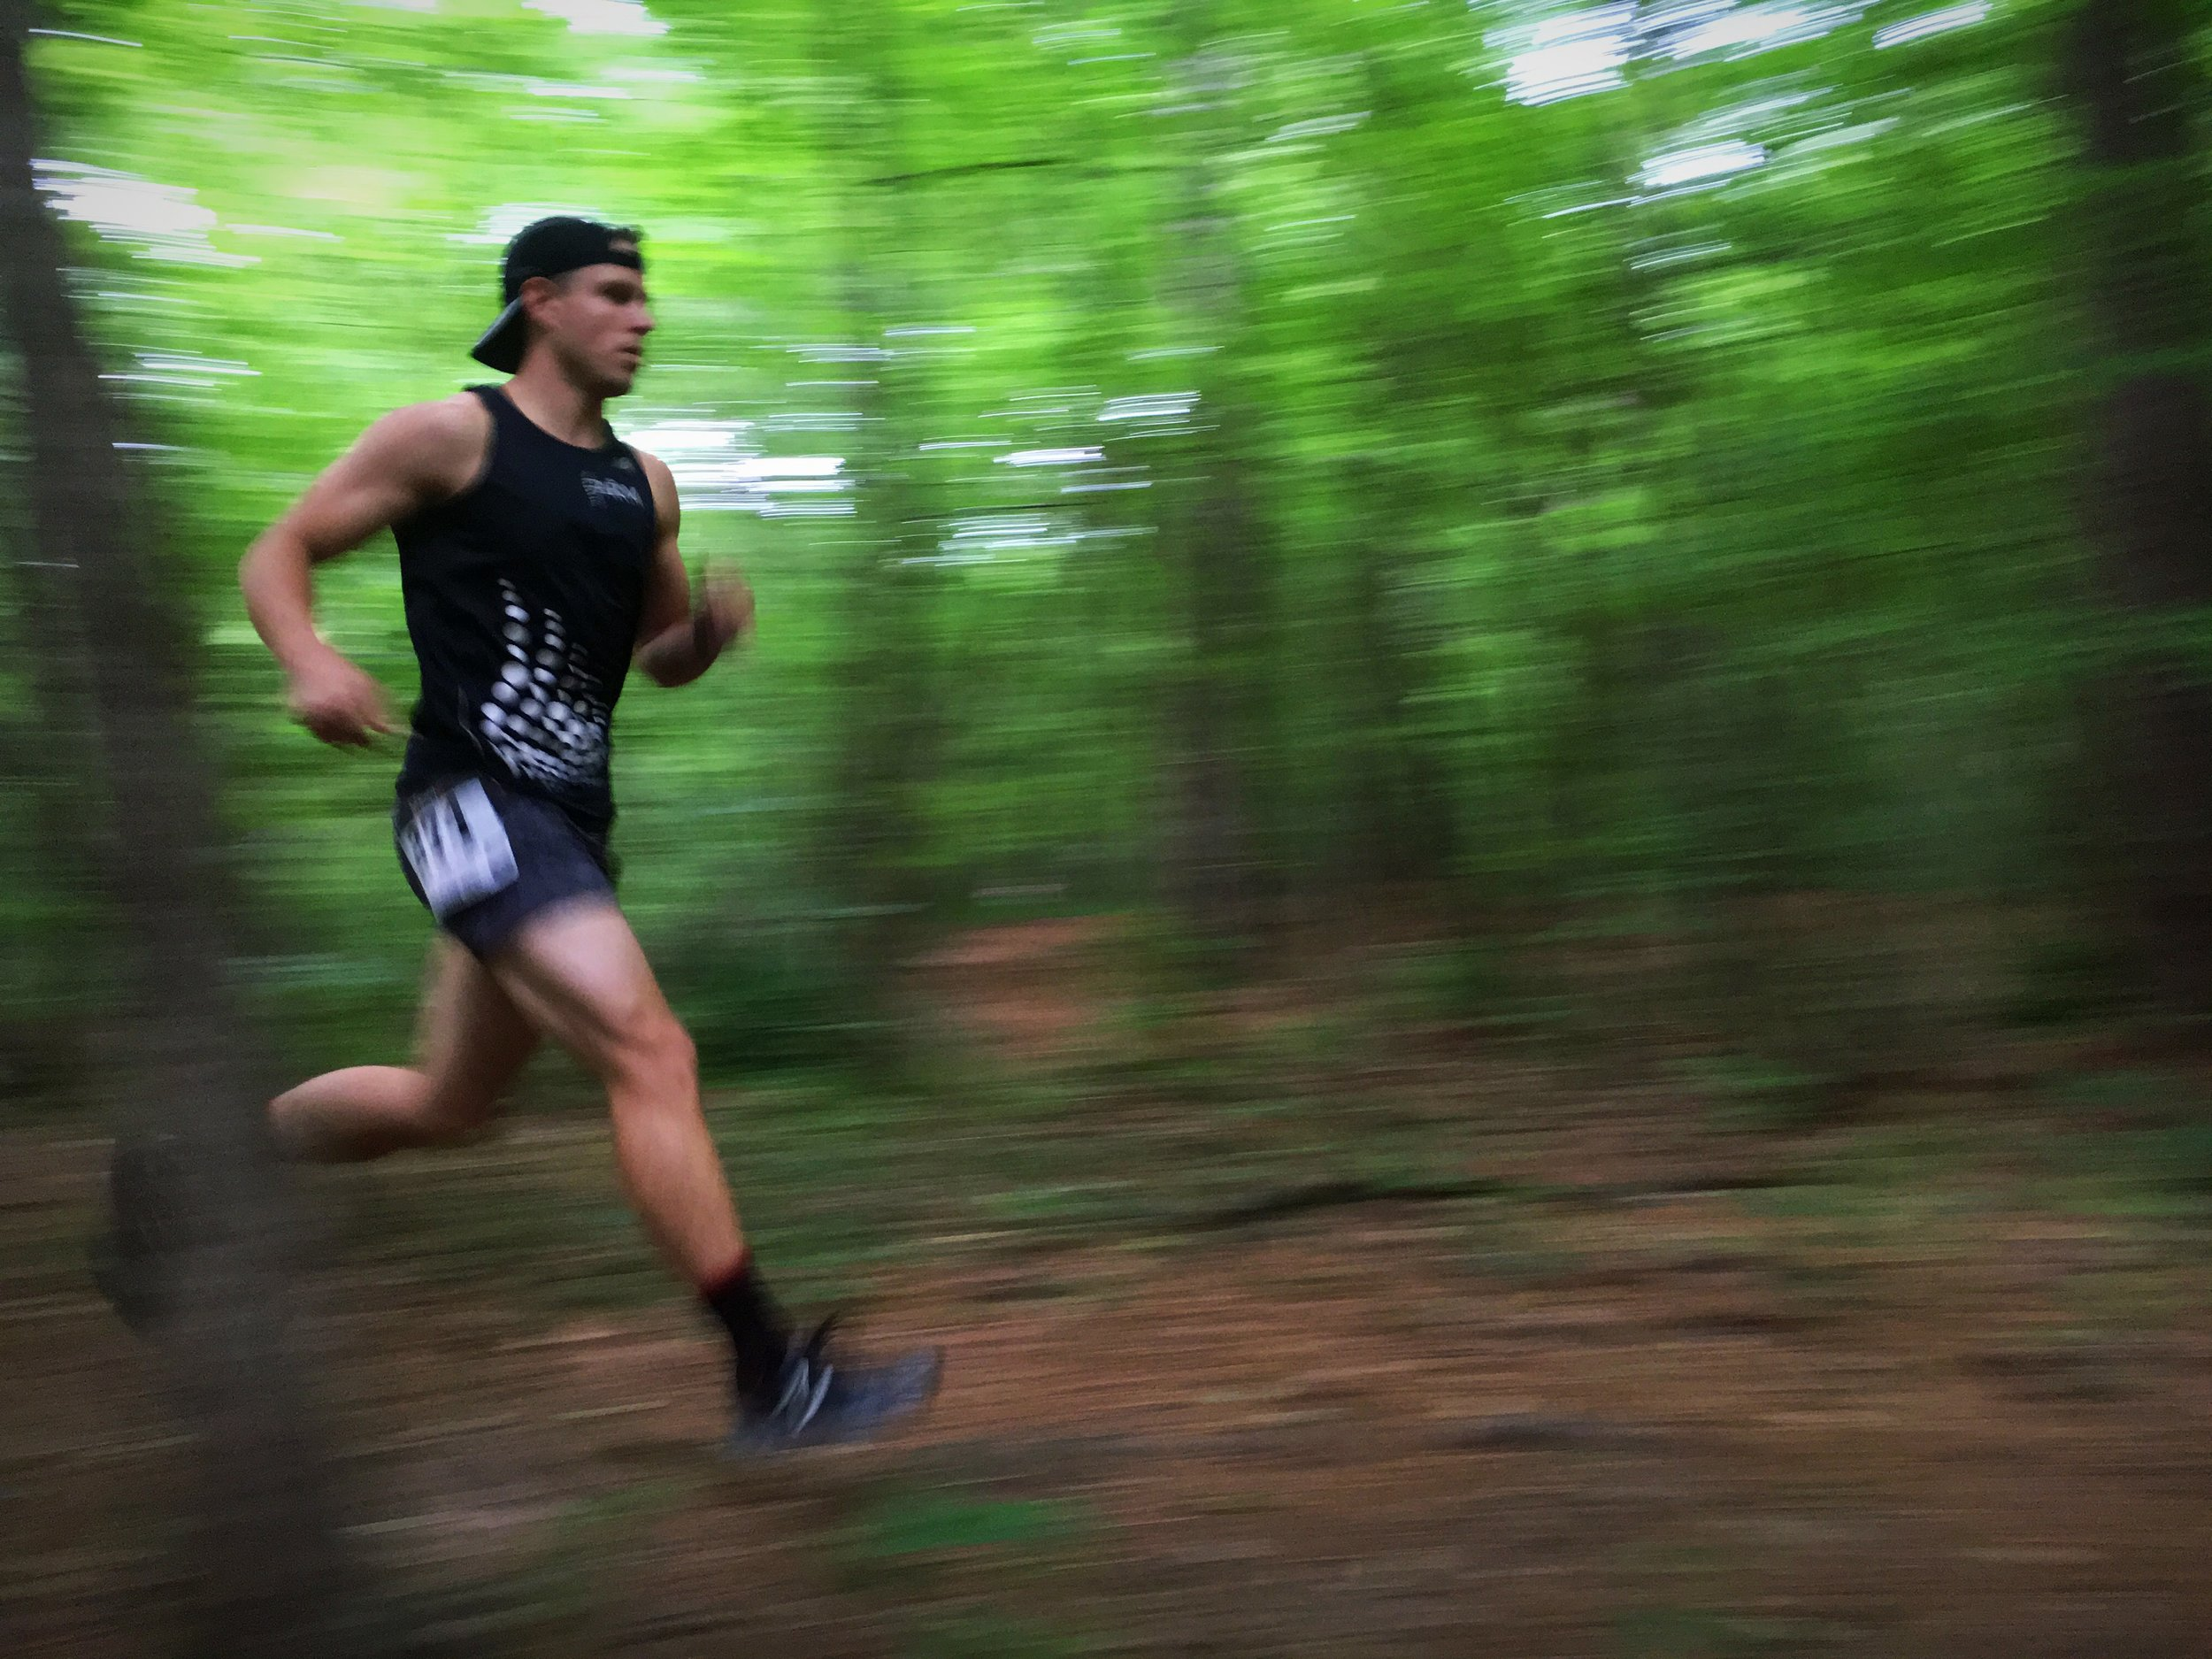 Join Dr. Beau - at Cedar Pavilion located near the South Trailhead in Oak Mountain State Park, where he will be covering the principles of sound running mechanics, how to maximize your breathing and then you'll tie it all together on a trail run around Double Oak Lake.